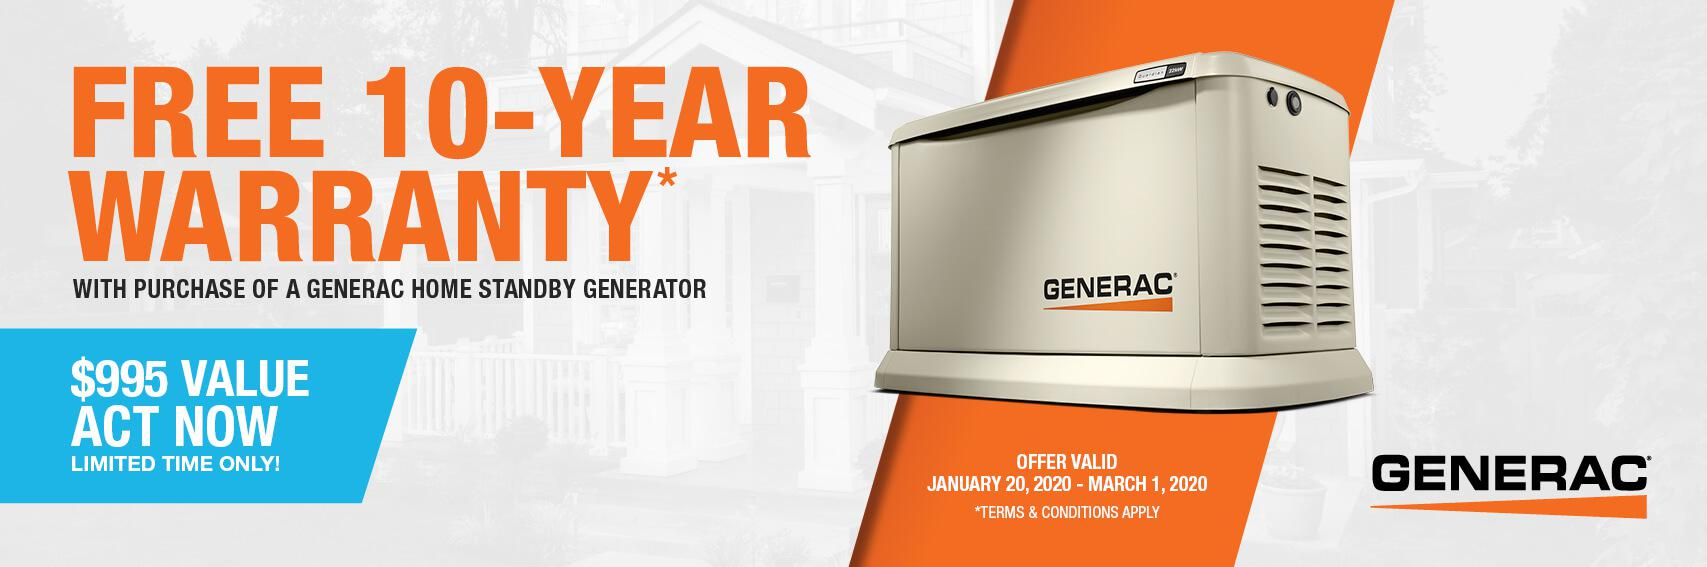 Homestandby Generator Deal | Warranty Offer | Generac Dealer | Beaumont, TX